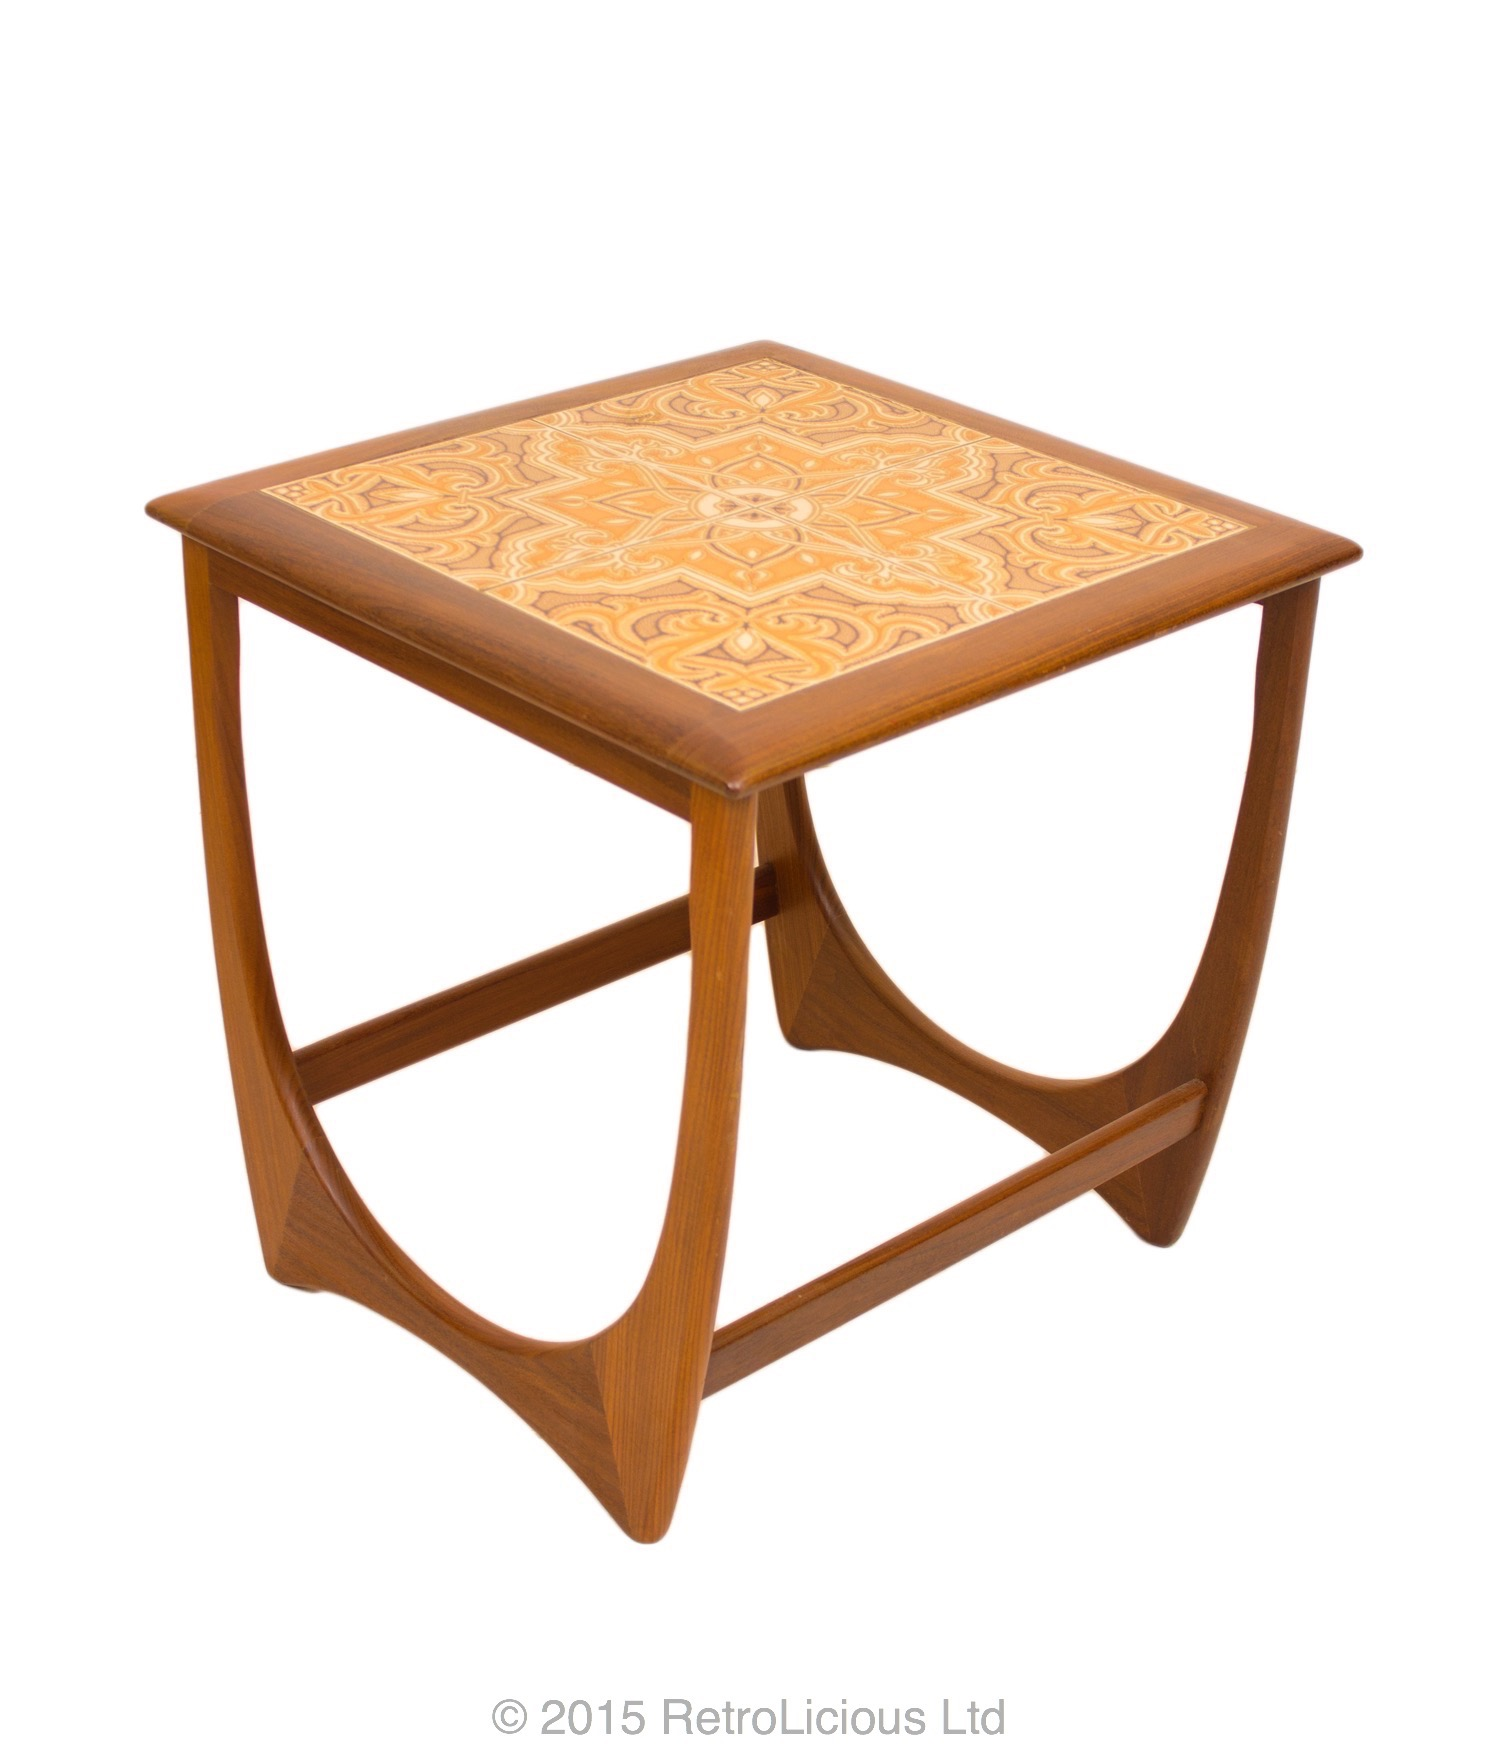 patio diy moroccan small tables mexican side table outdoor mosaic blue top chantel engaging ceramic tile accent full size bedside design ideas hairpin ikea garden unfinished